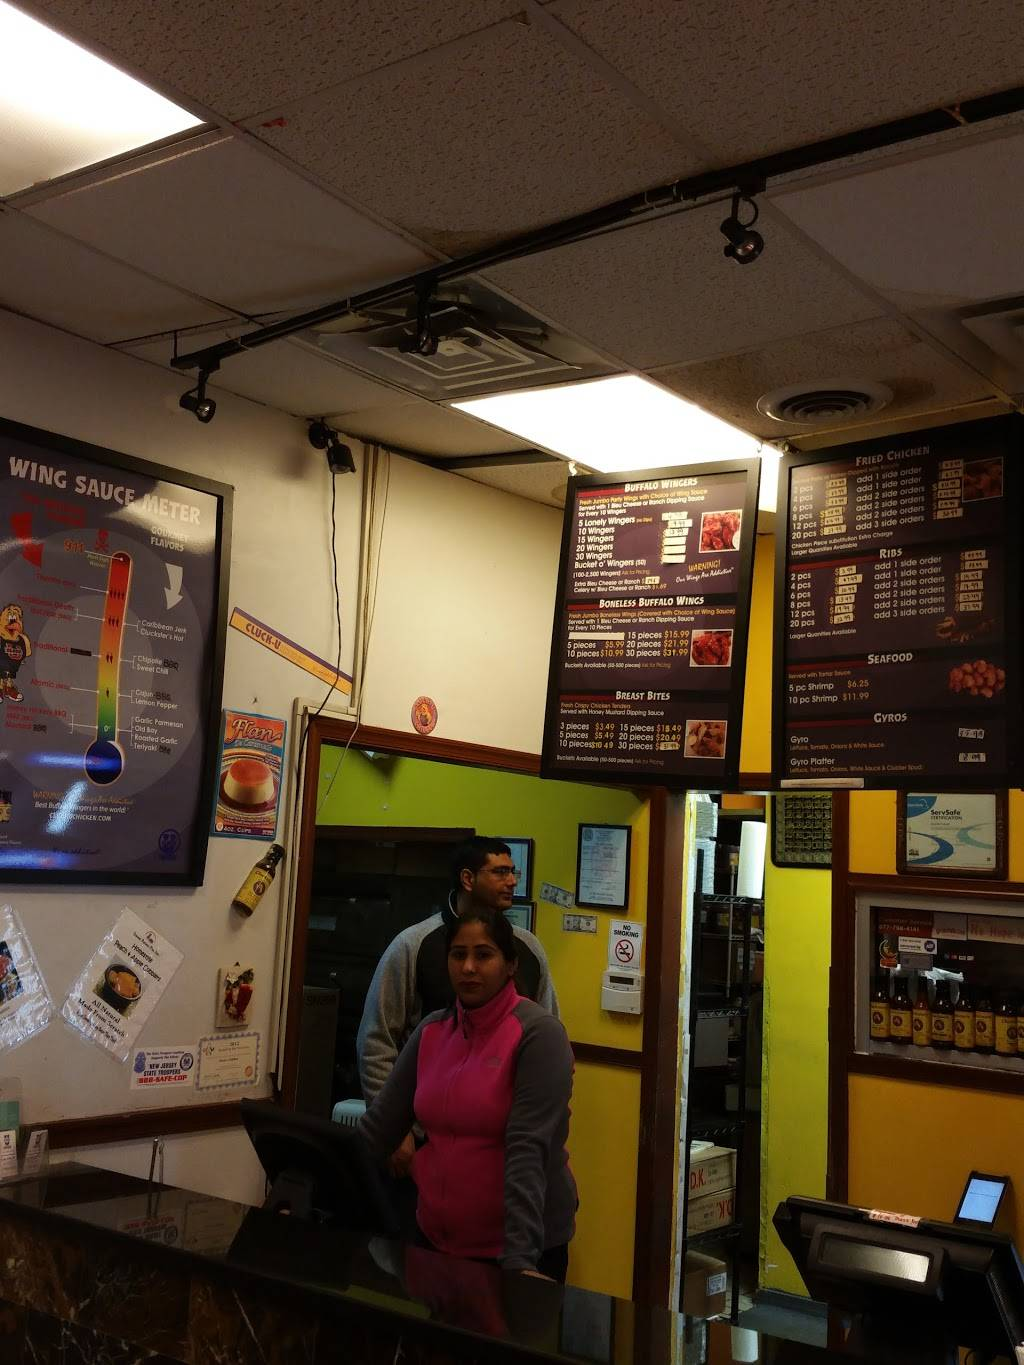 Cluck-U-Chicken | meal takeaway | 586 West Side Ave, Jersey City, NJ 07304, USA | 2019462222 OR +1 201-946-2222